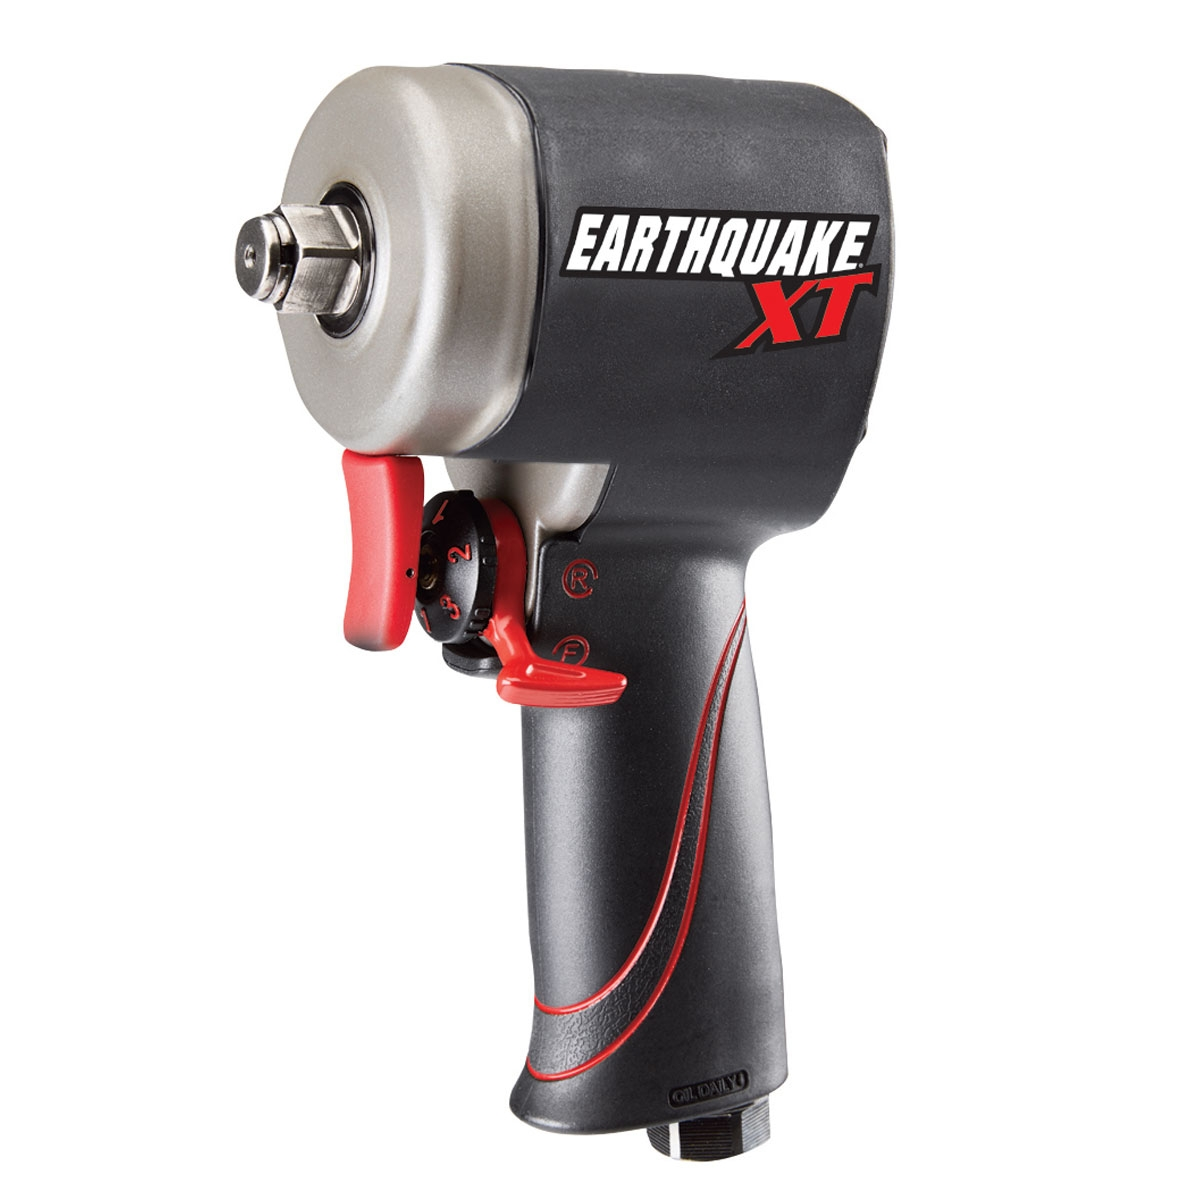 Ultra Compact Xtreme Torque Stubby Air Impact Wrench